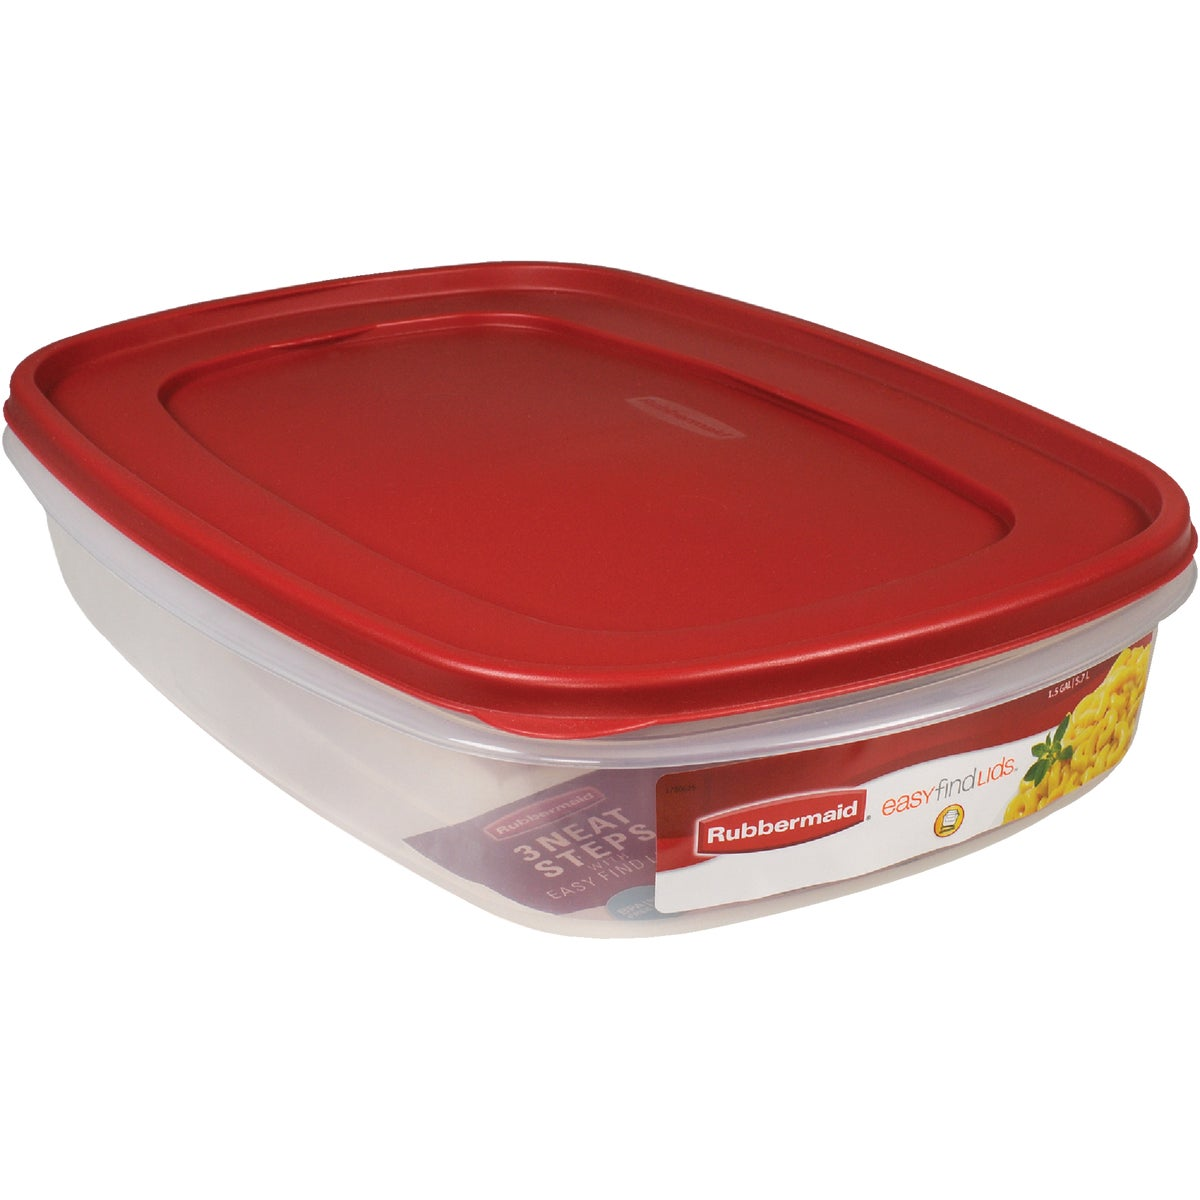 1.5GAL FOOD CONTAINER - 1777163 by Rubbermaid Home